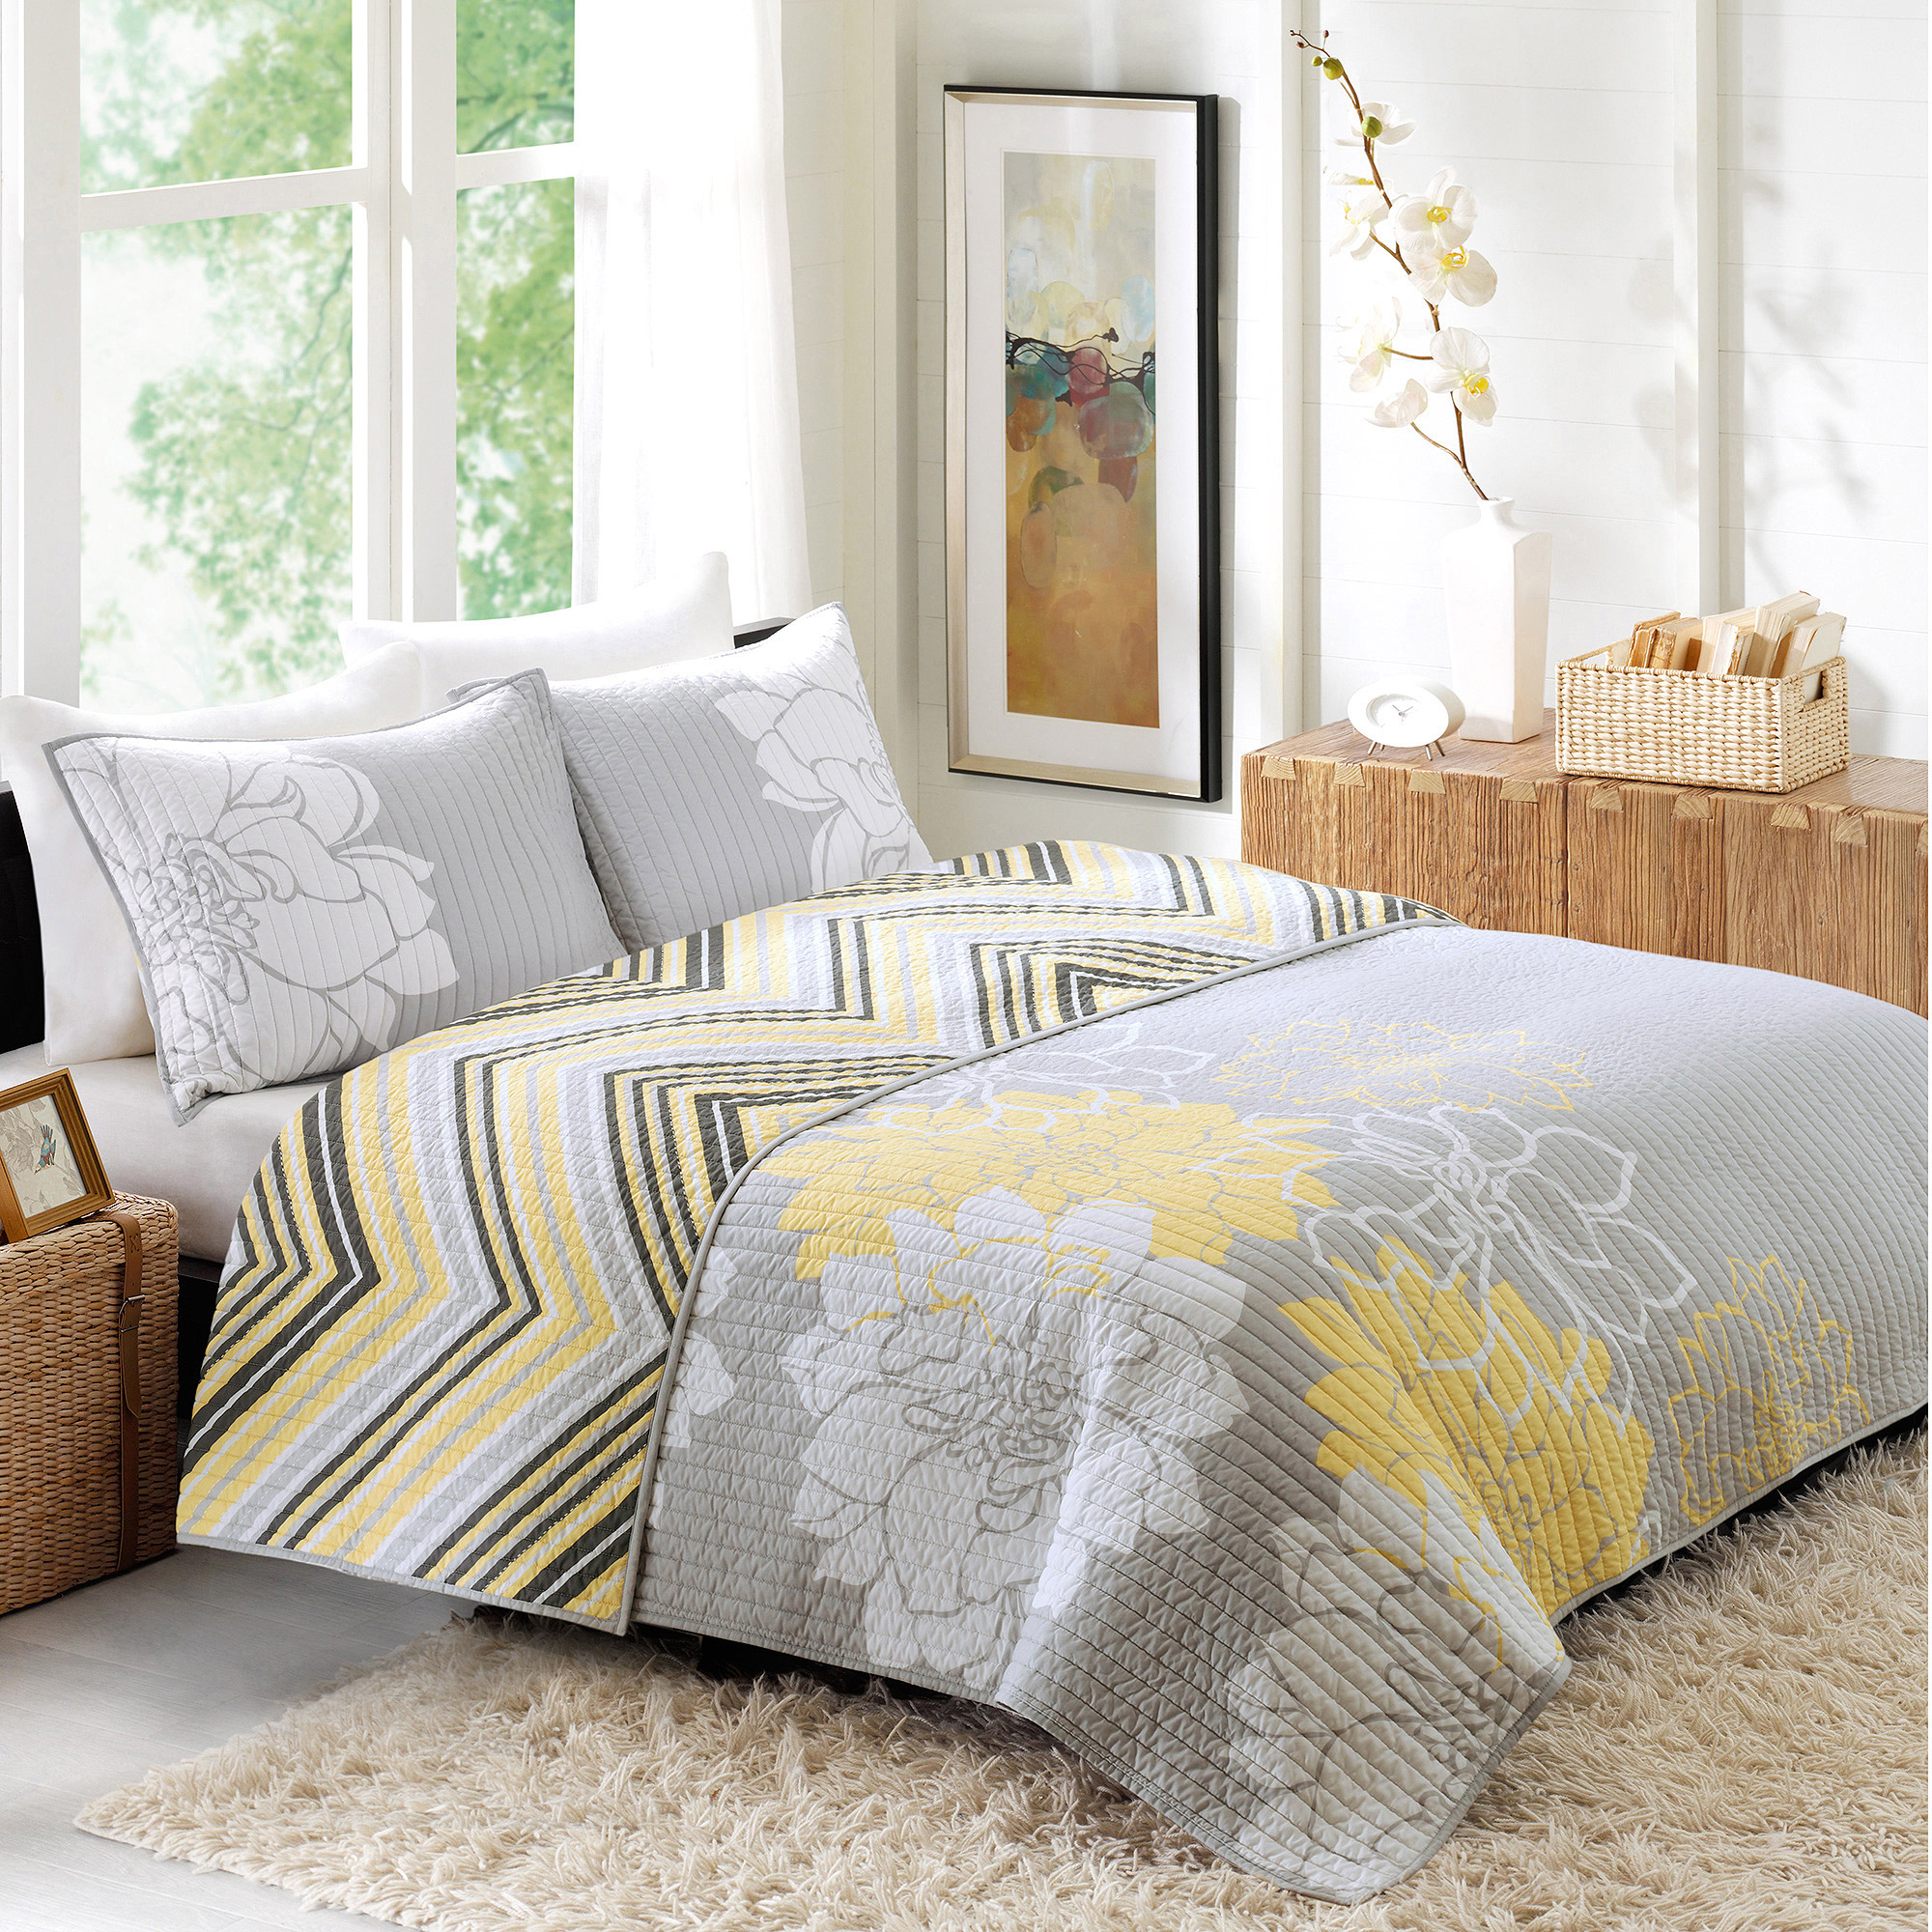 crib grey concept exceptional beddingblack black white your chevron stirring bed bedding full and make yellow bedroom pop picture gray will of size that